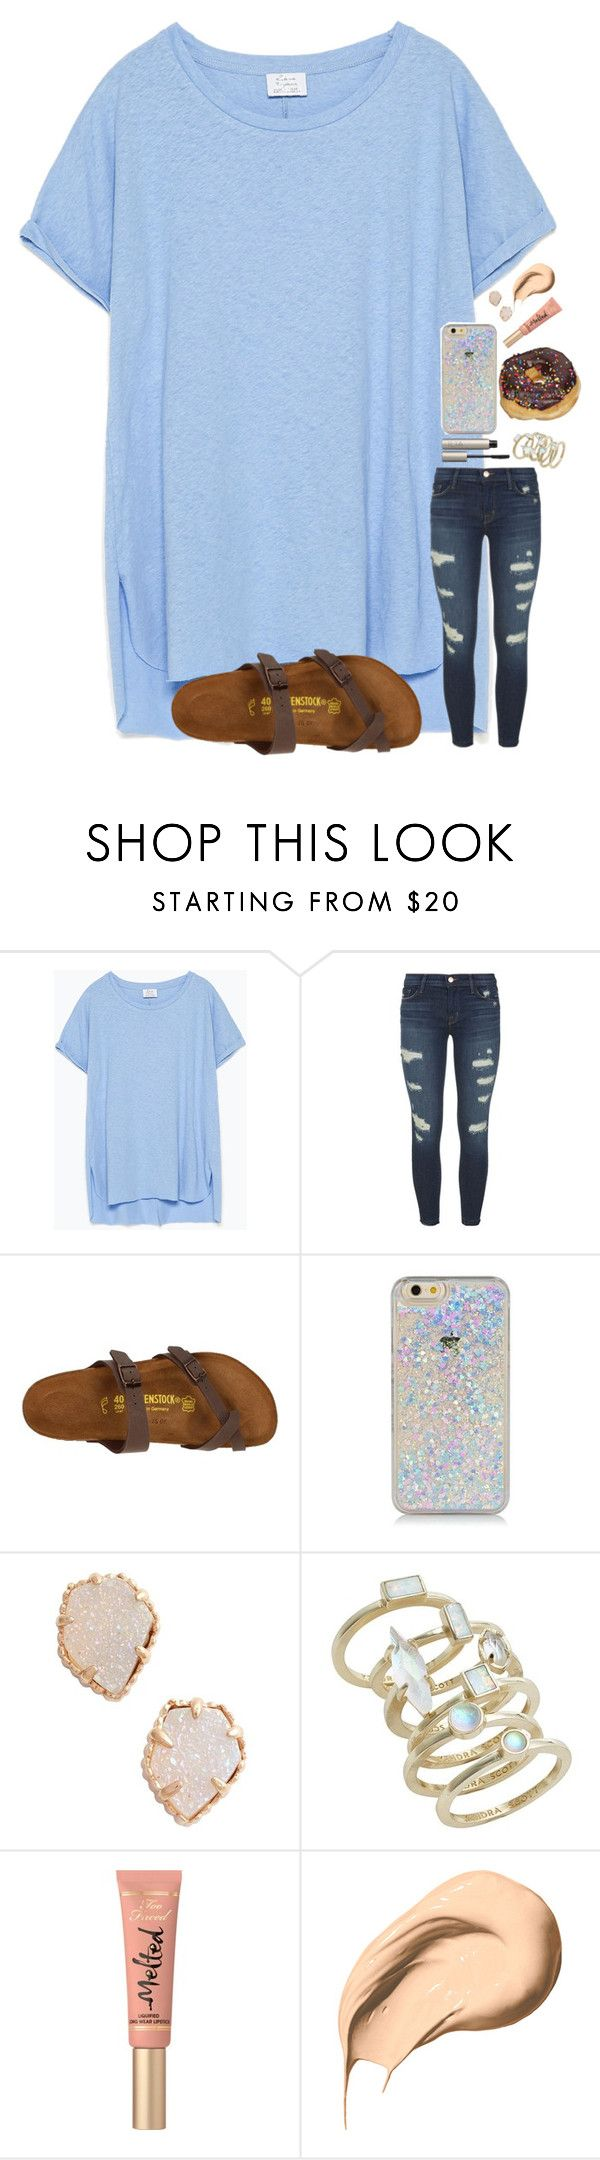 """blue ain't your color"" by ab1525 ❤ liked on Polyvore featuring Zara, J Brand, Birkenstock, Kendra Scott, Too Faced Cosmetics, Bobbi Brown Cosmetics and Ilia"